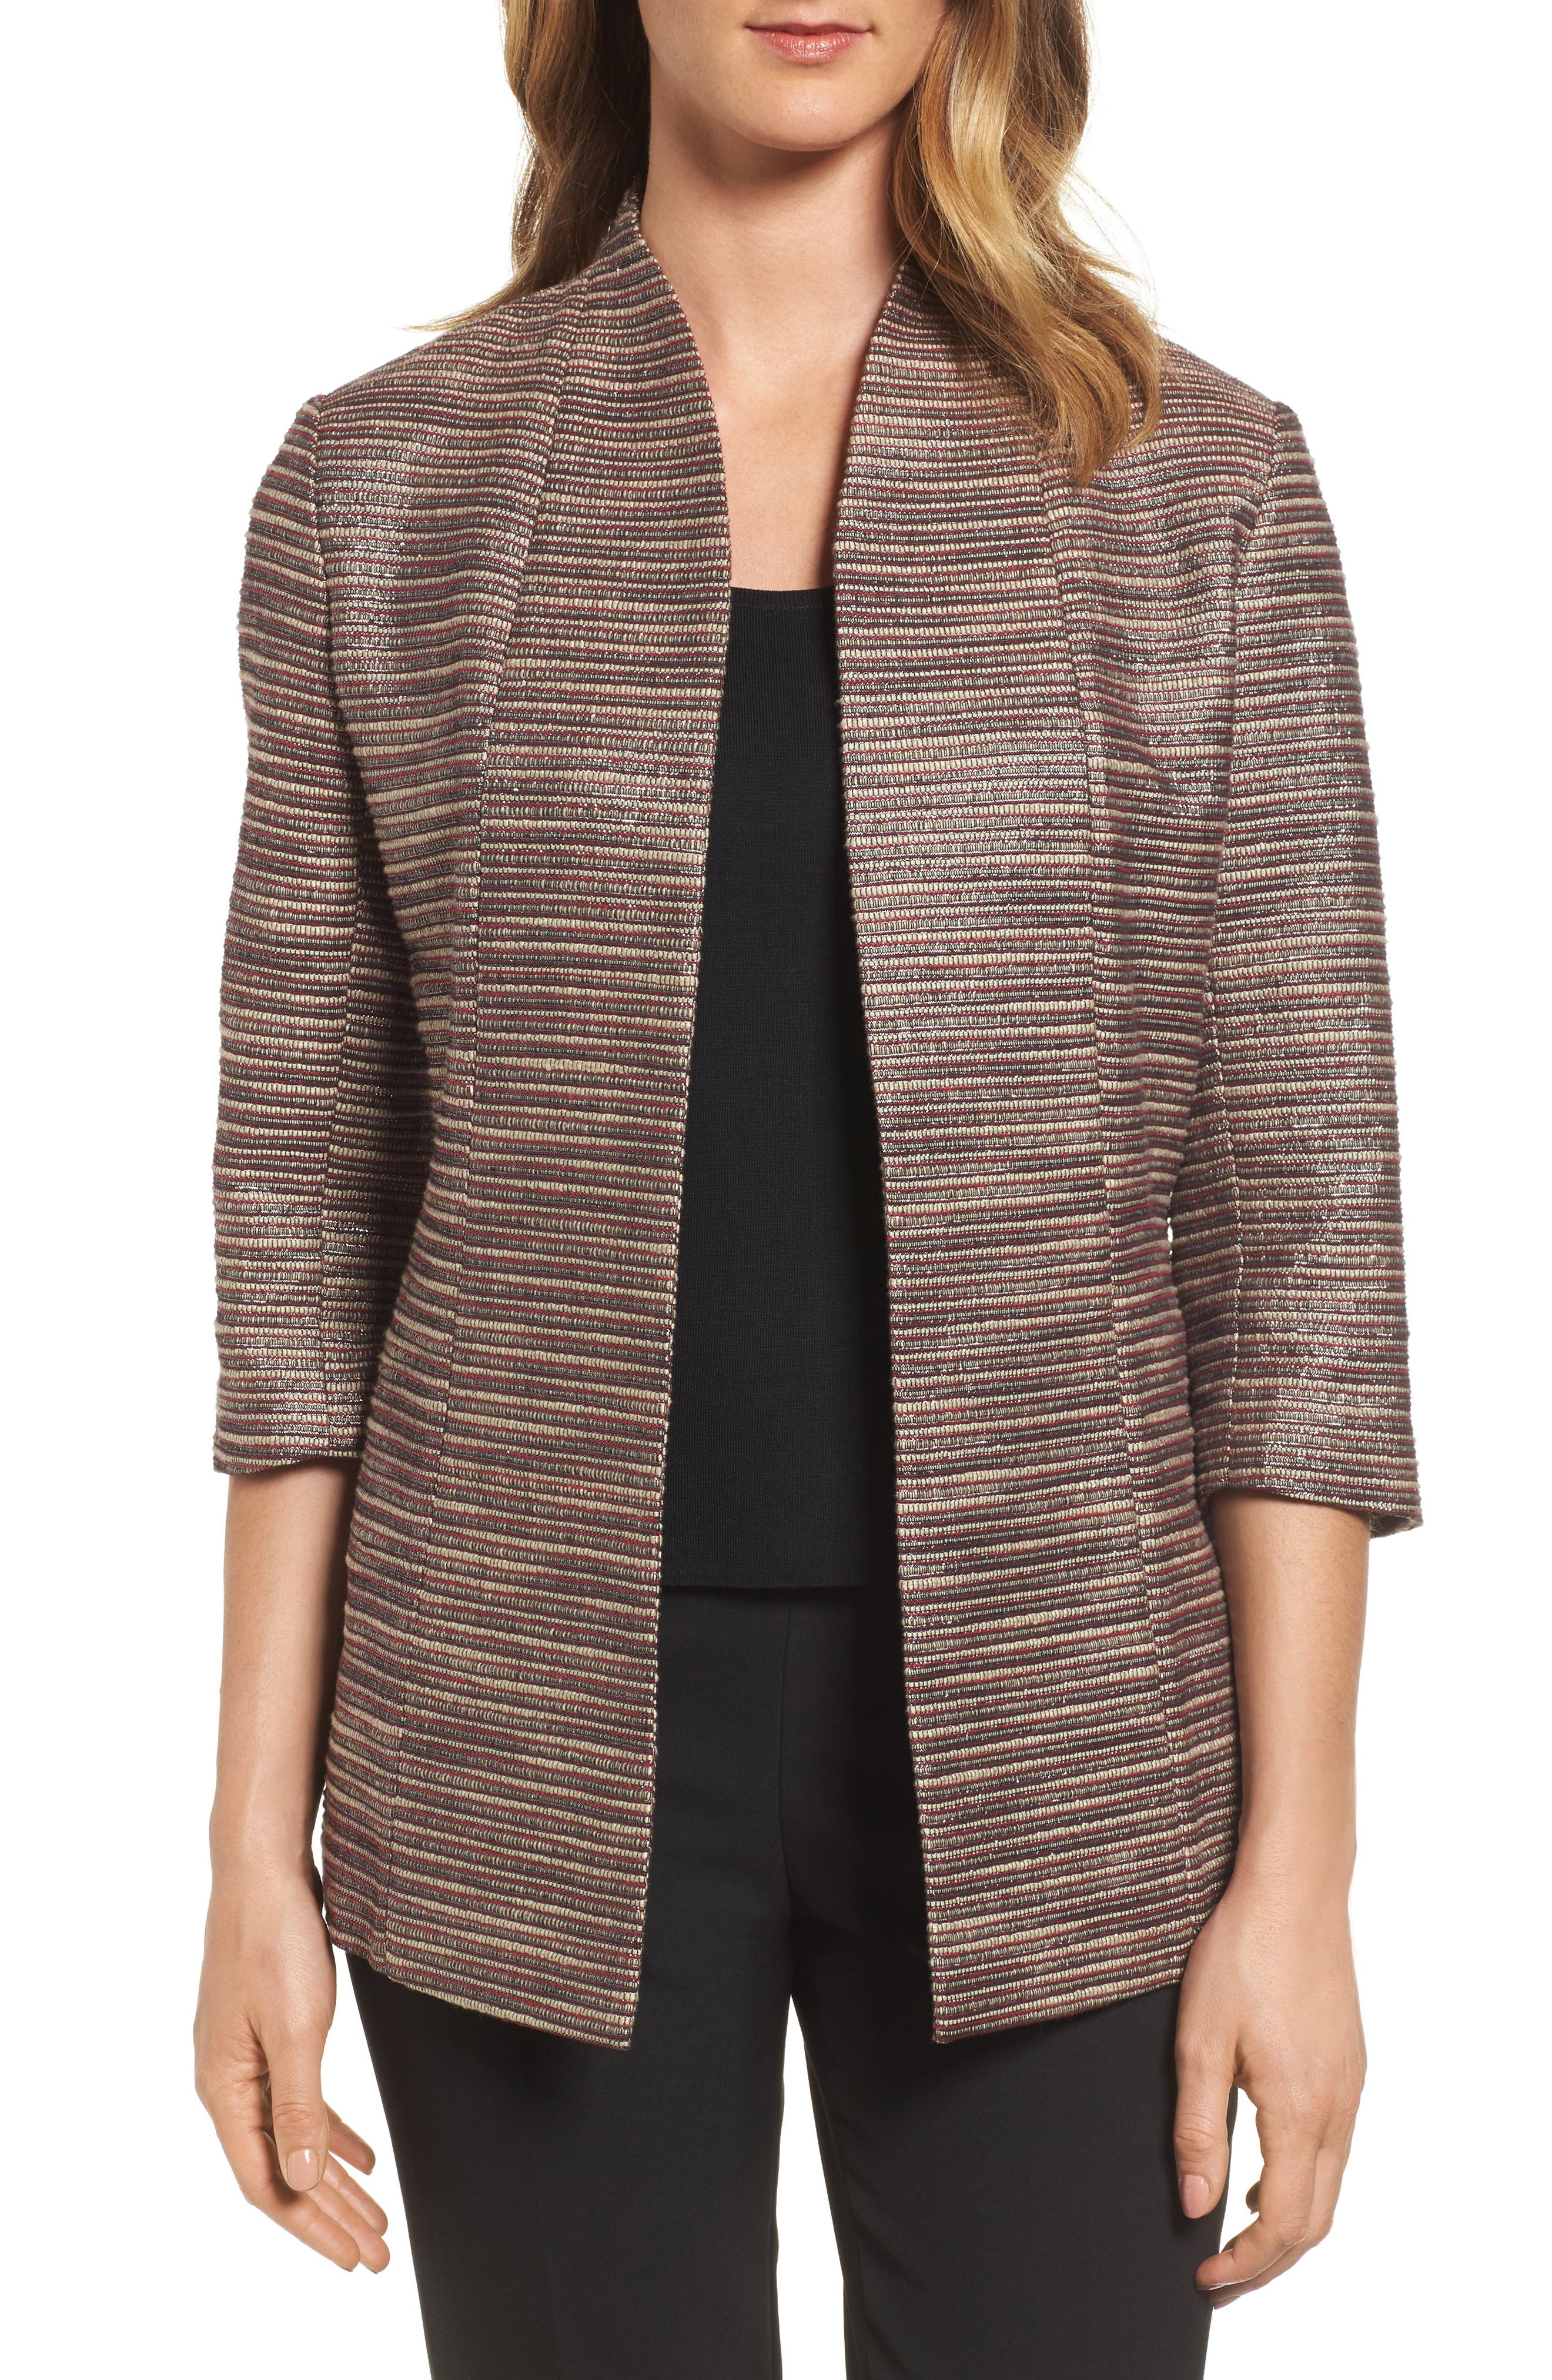 Alternate Image 1 Selected - Ming Wang Ribbed Metallic Tweed Jacket